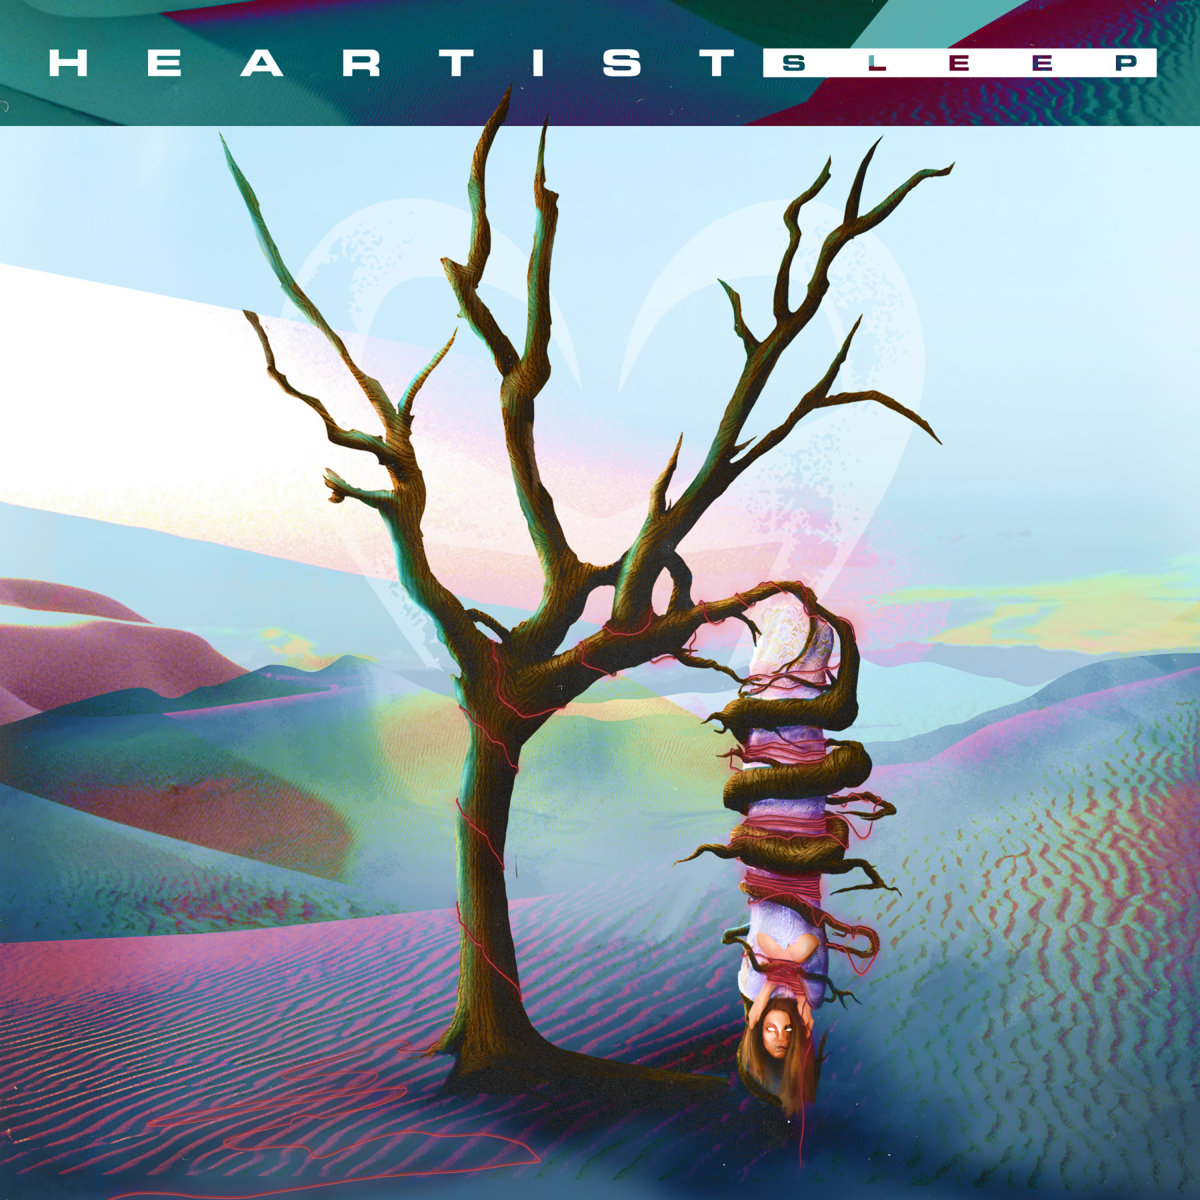 Heartist nothing you didn't deserve [ep] (2012) » core radio.